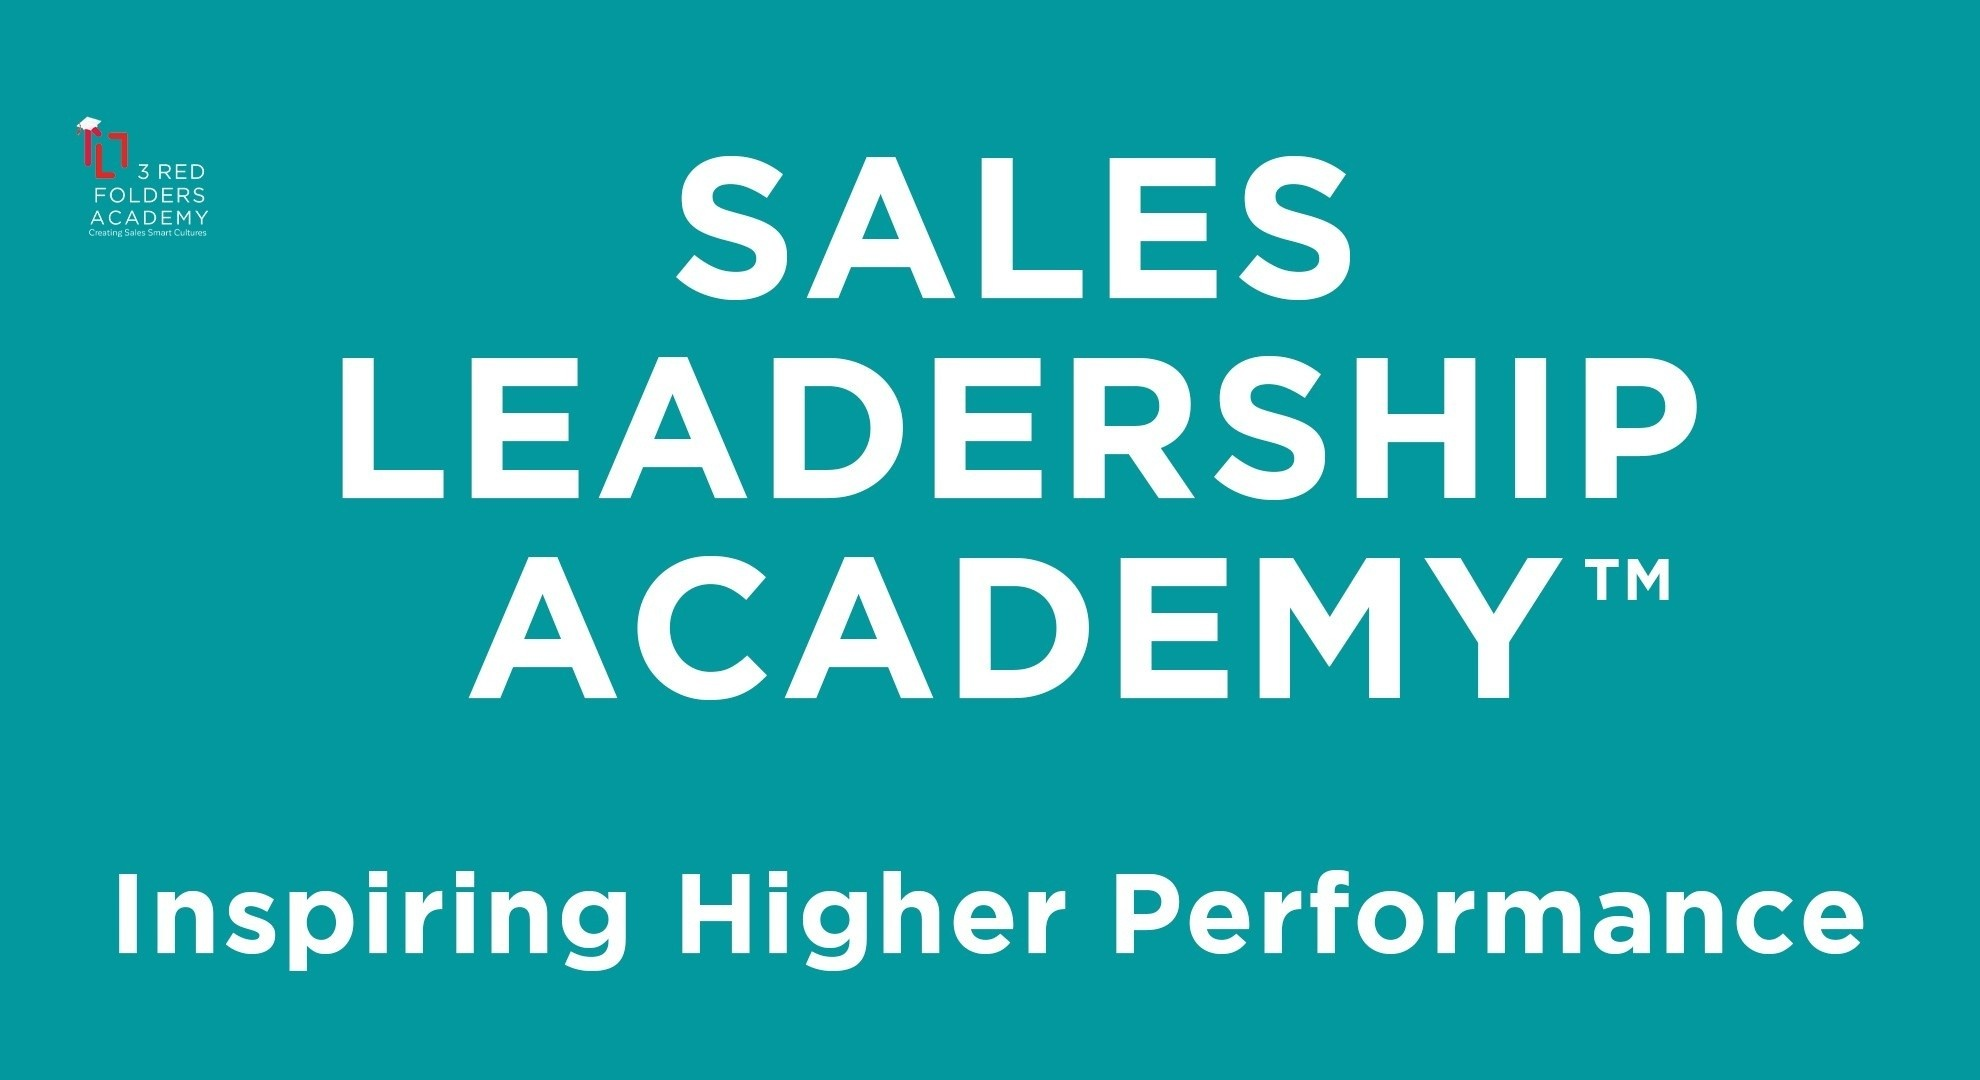 3 Red Folders Academy - Advancing the Consultative B2B Sale